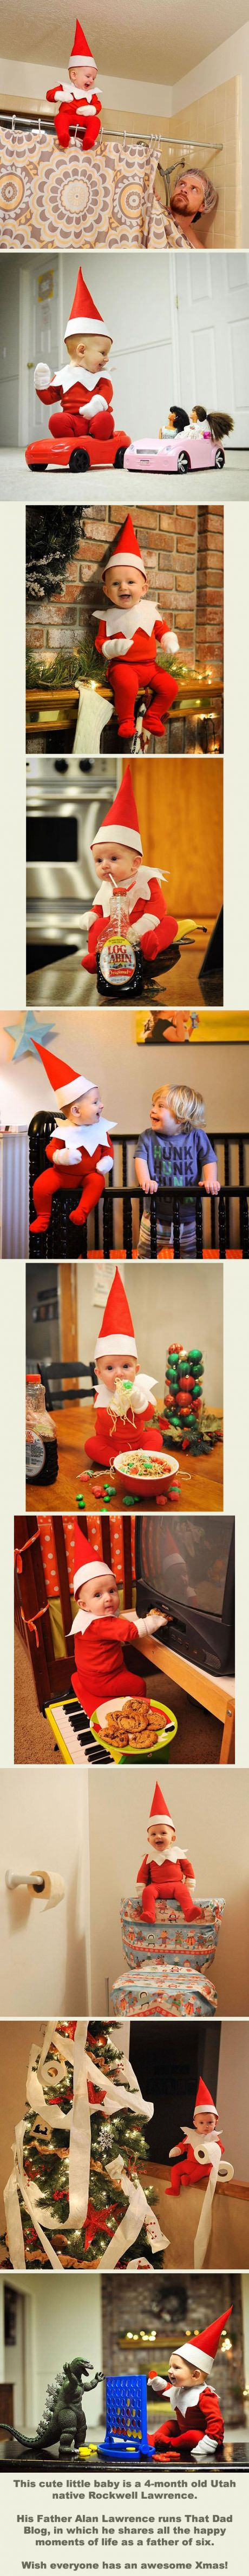 This Baby Elf On The Shelf Is Probably The Cutest Christmas Decoration Ever! (By thatdadblog on Instagram)